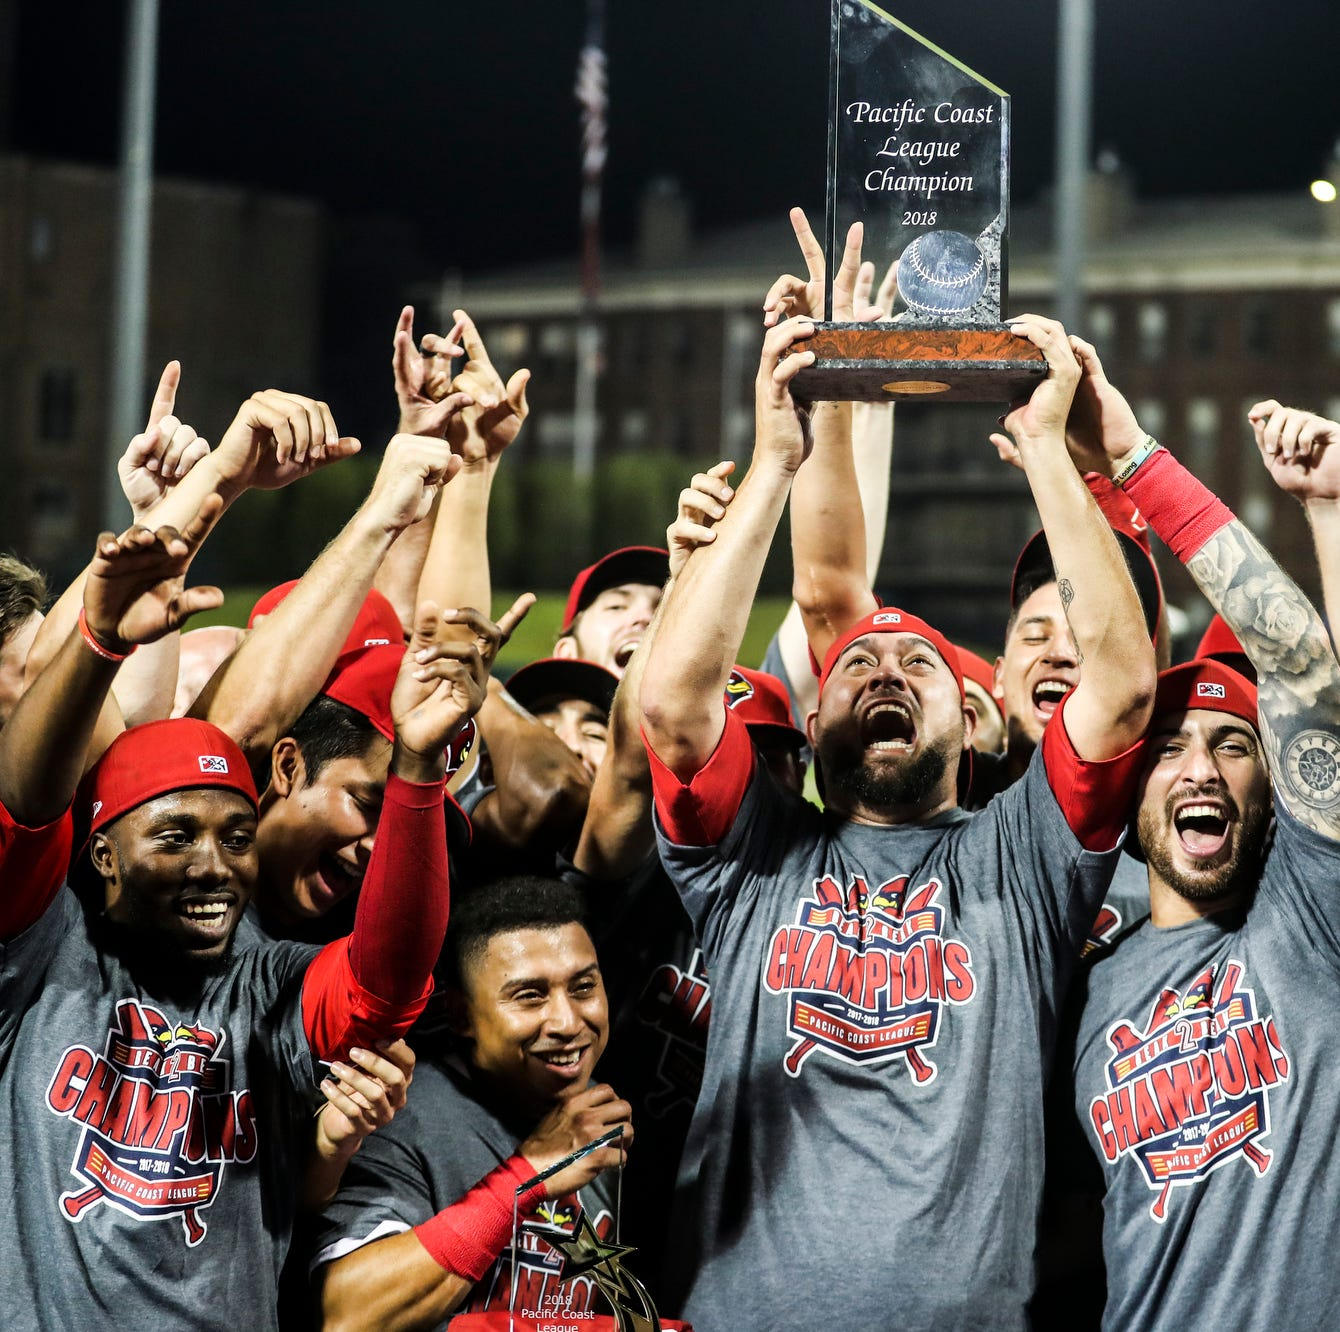 Memphis Redbirds and Stubby Clapp, baseball champions | Editorial